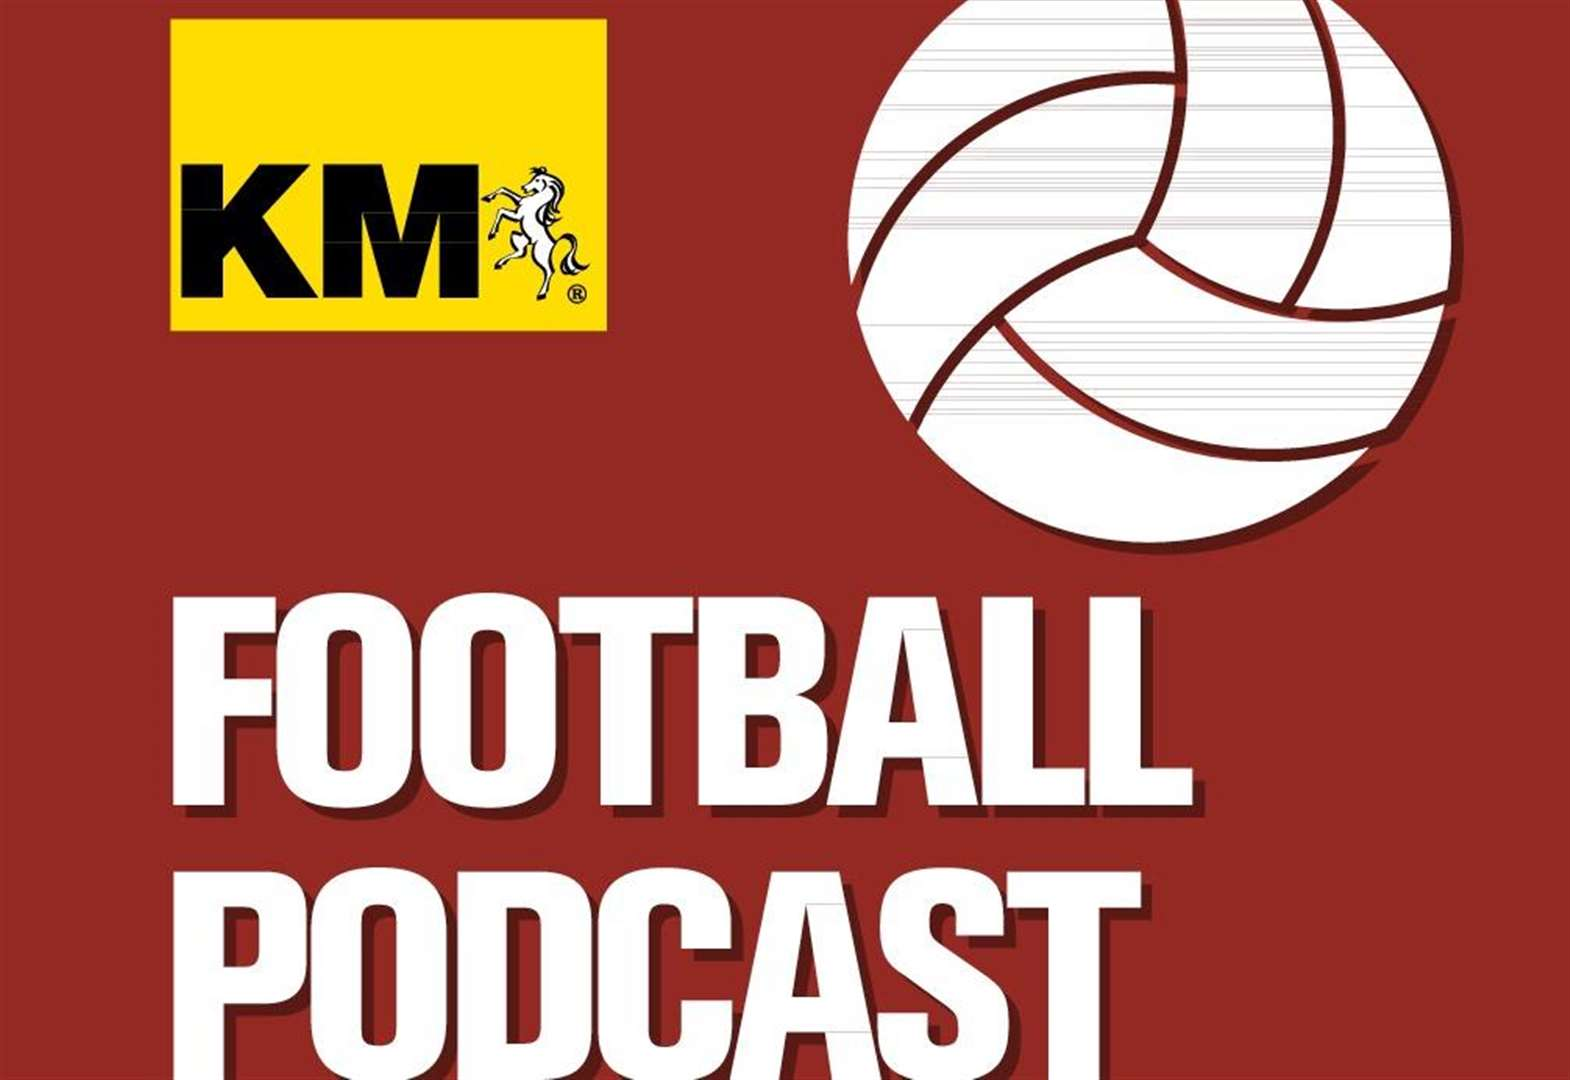 KM Football Podcast episode 2